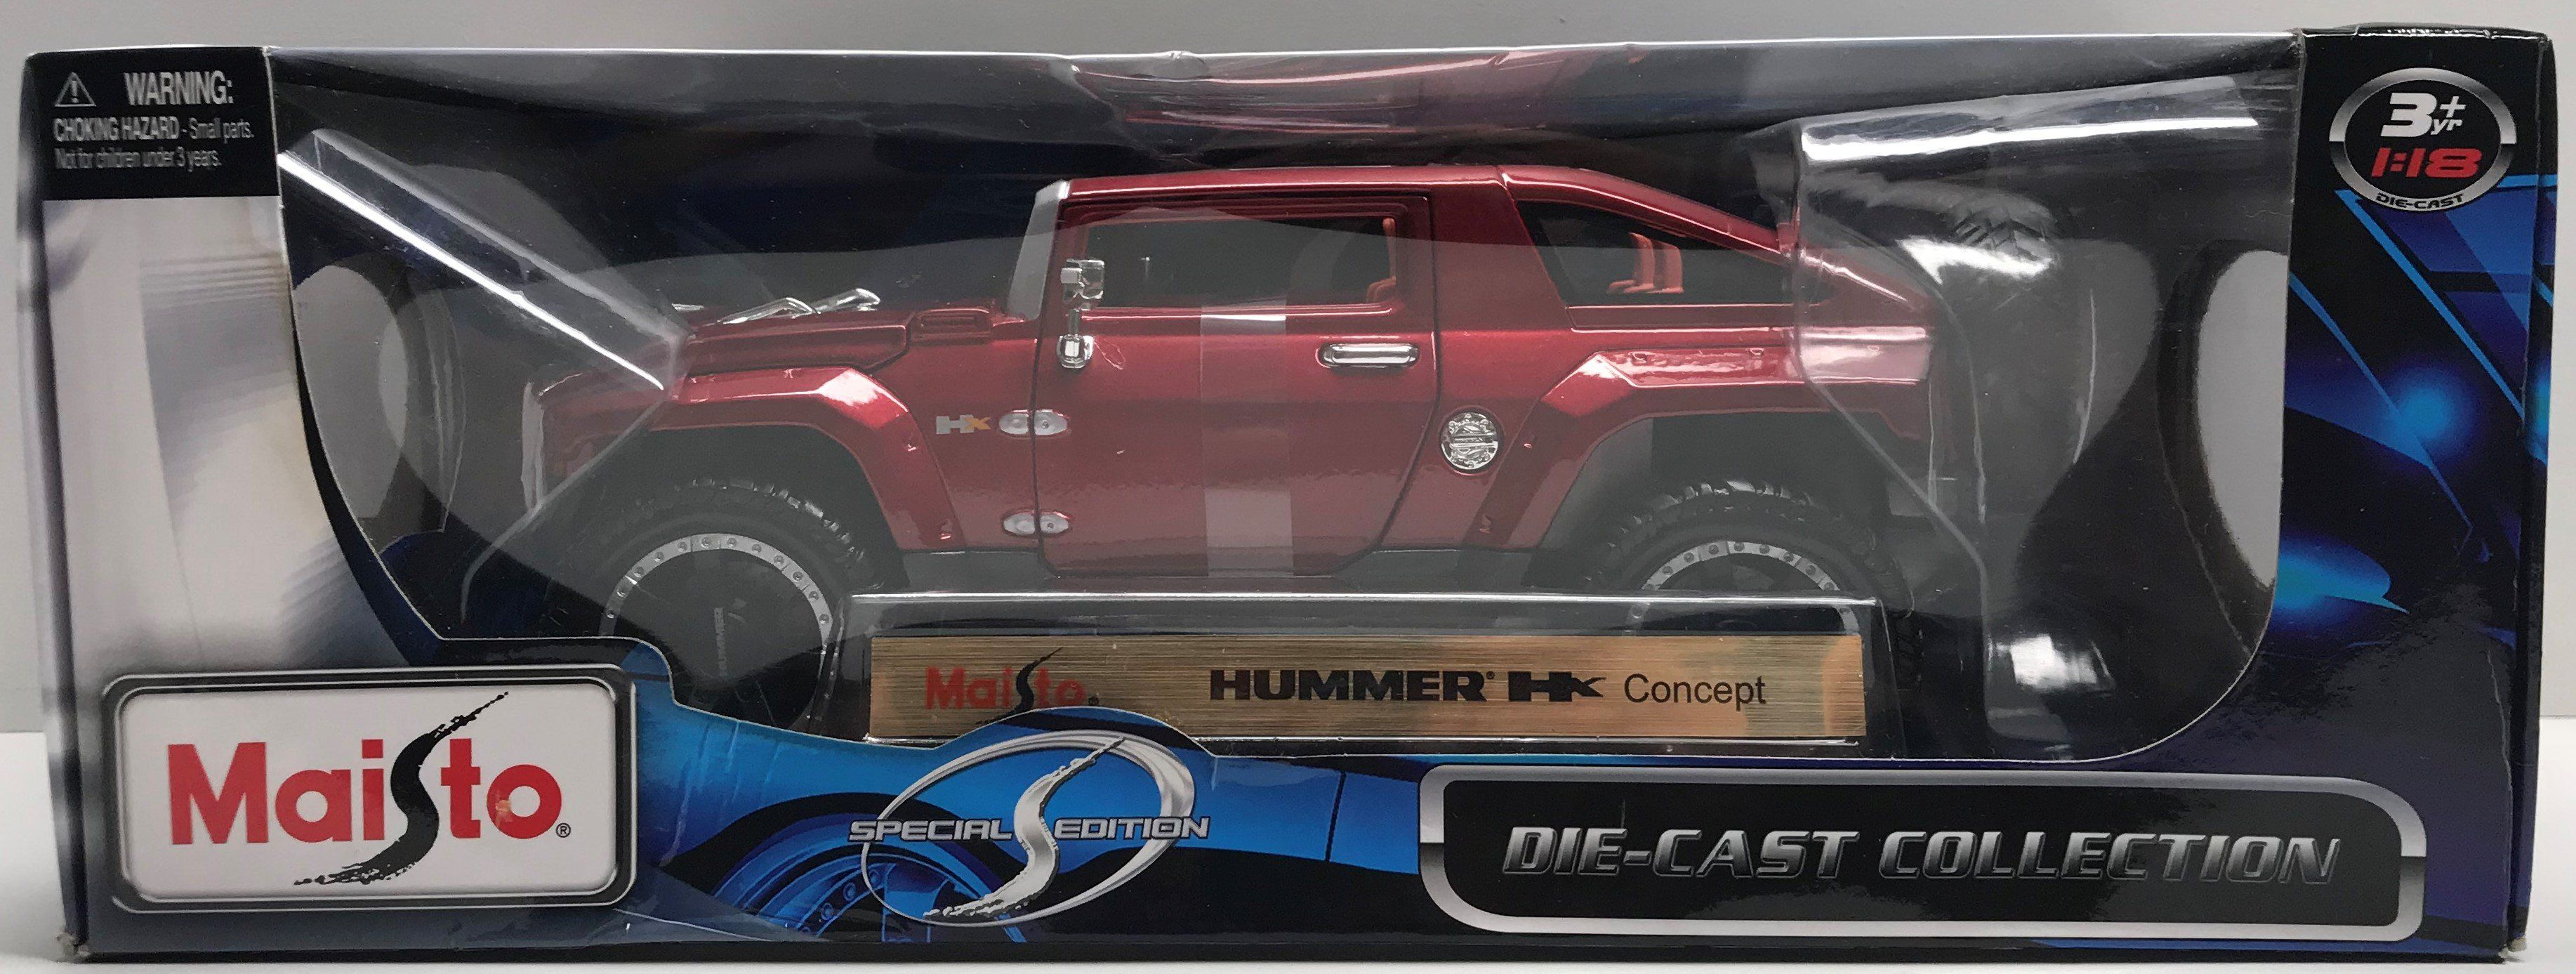 Jeep car toys  TAS   Maisto DieCast Hummer Hx Concept  Hummer and Products